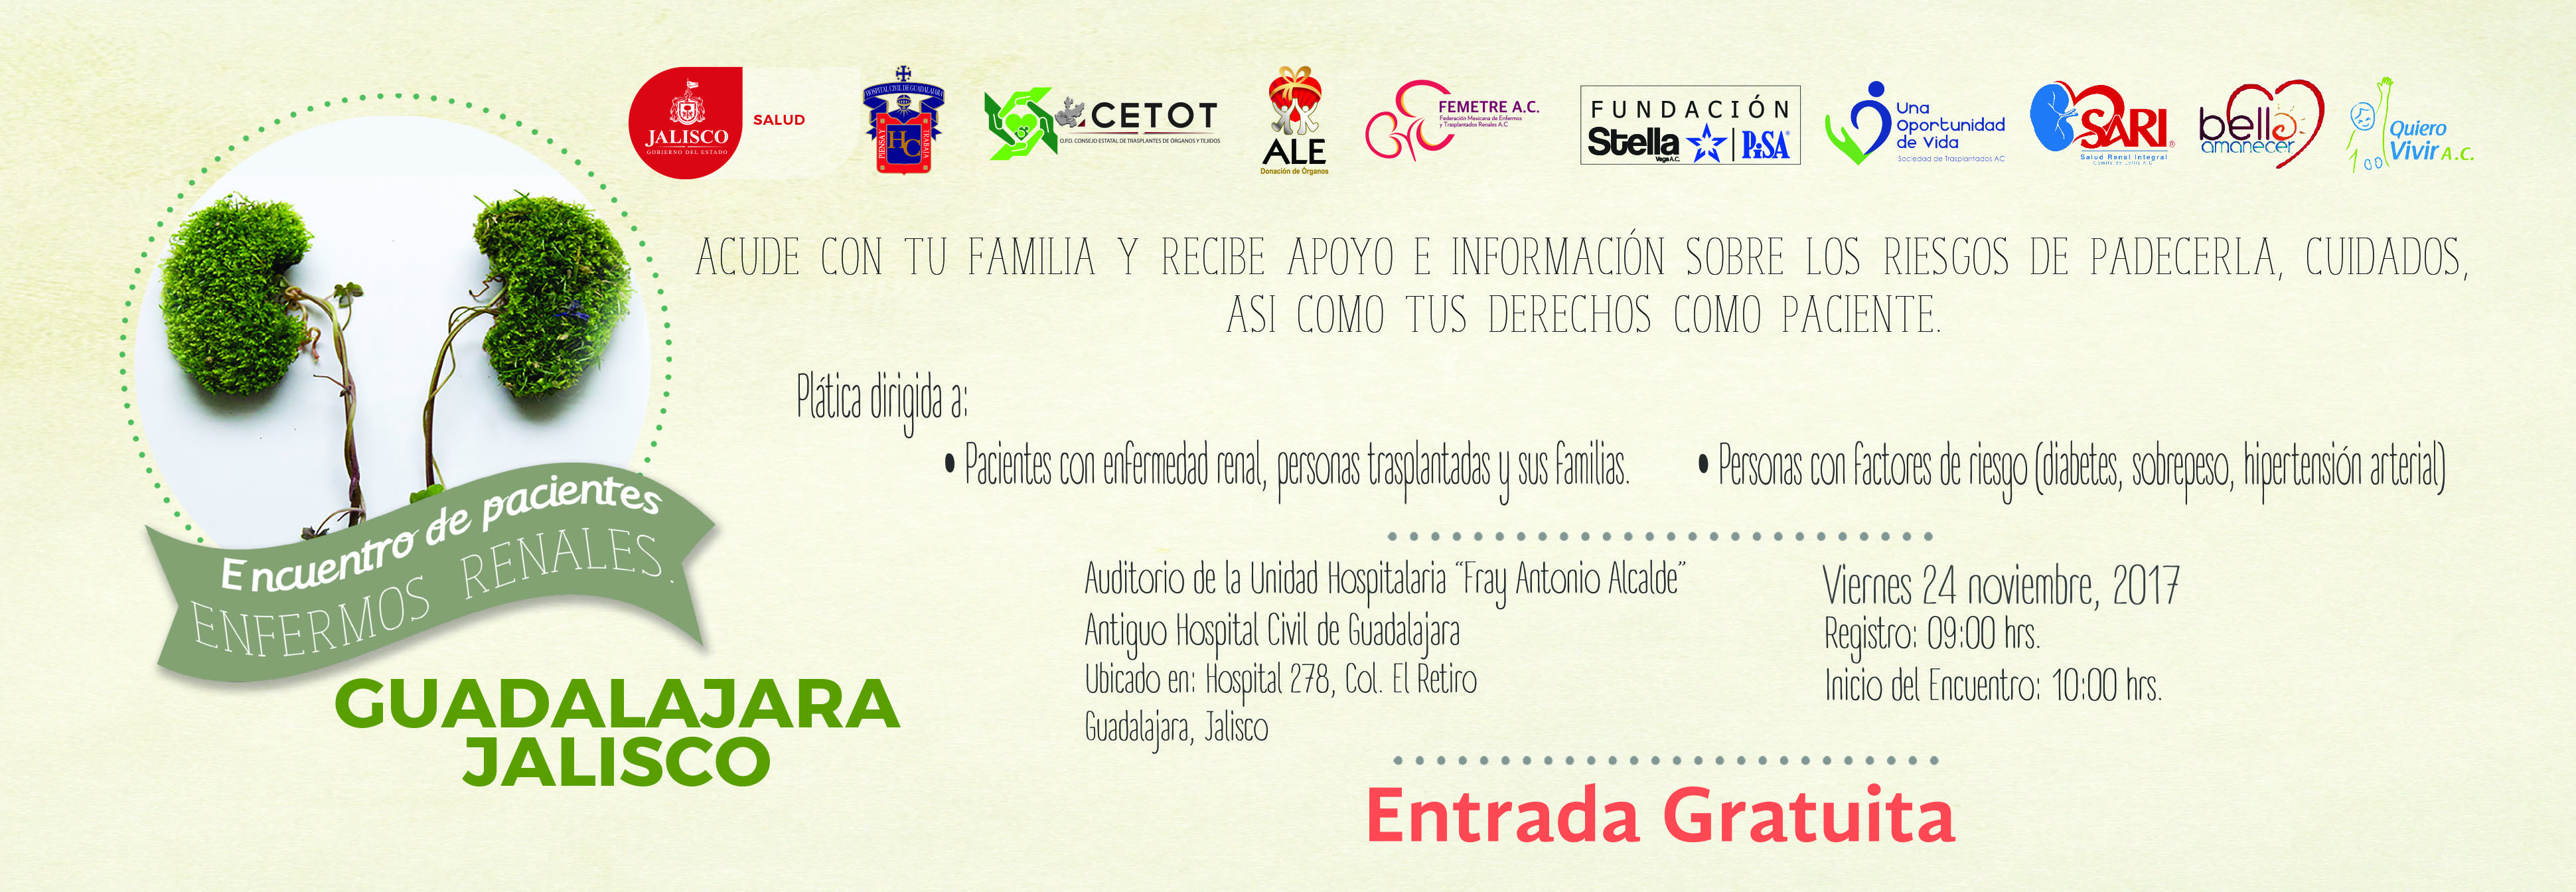 Banner-Encuentro-Pacientes-Pagweb-GDL